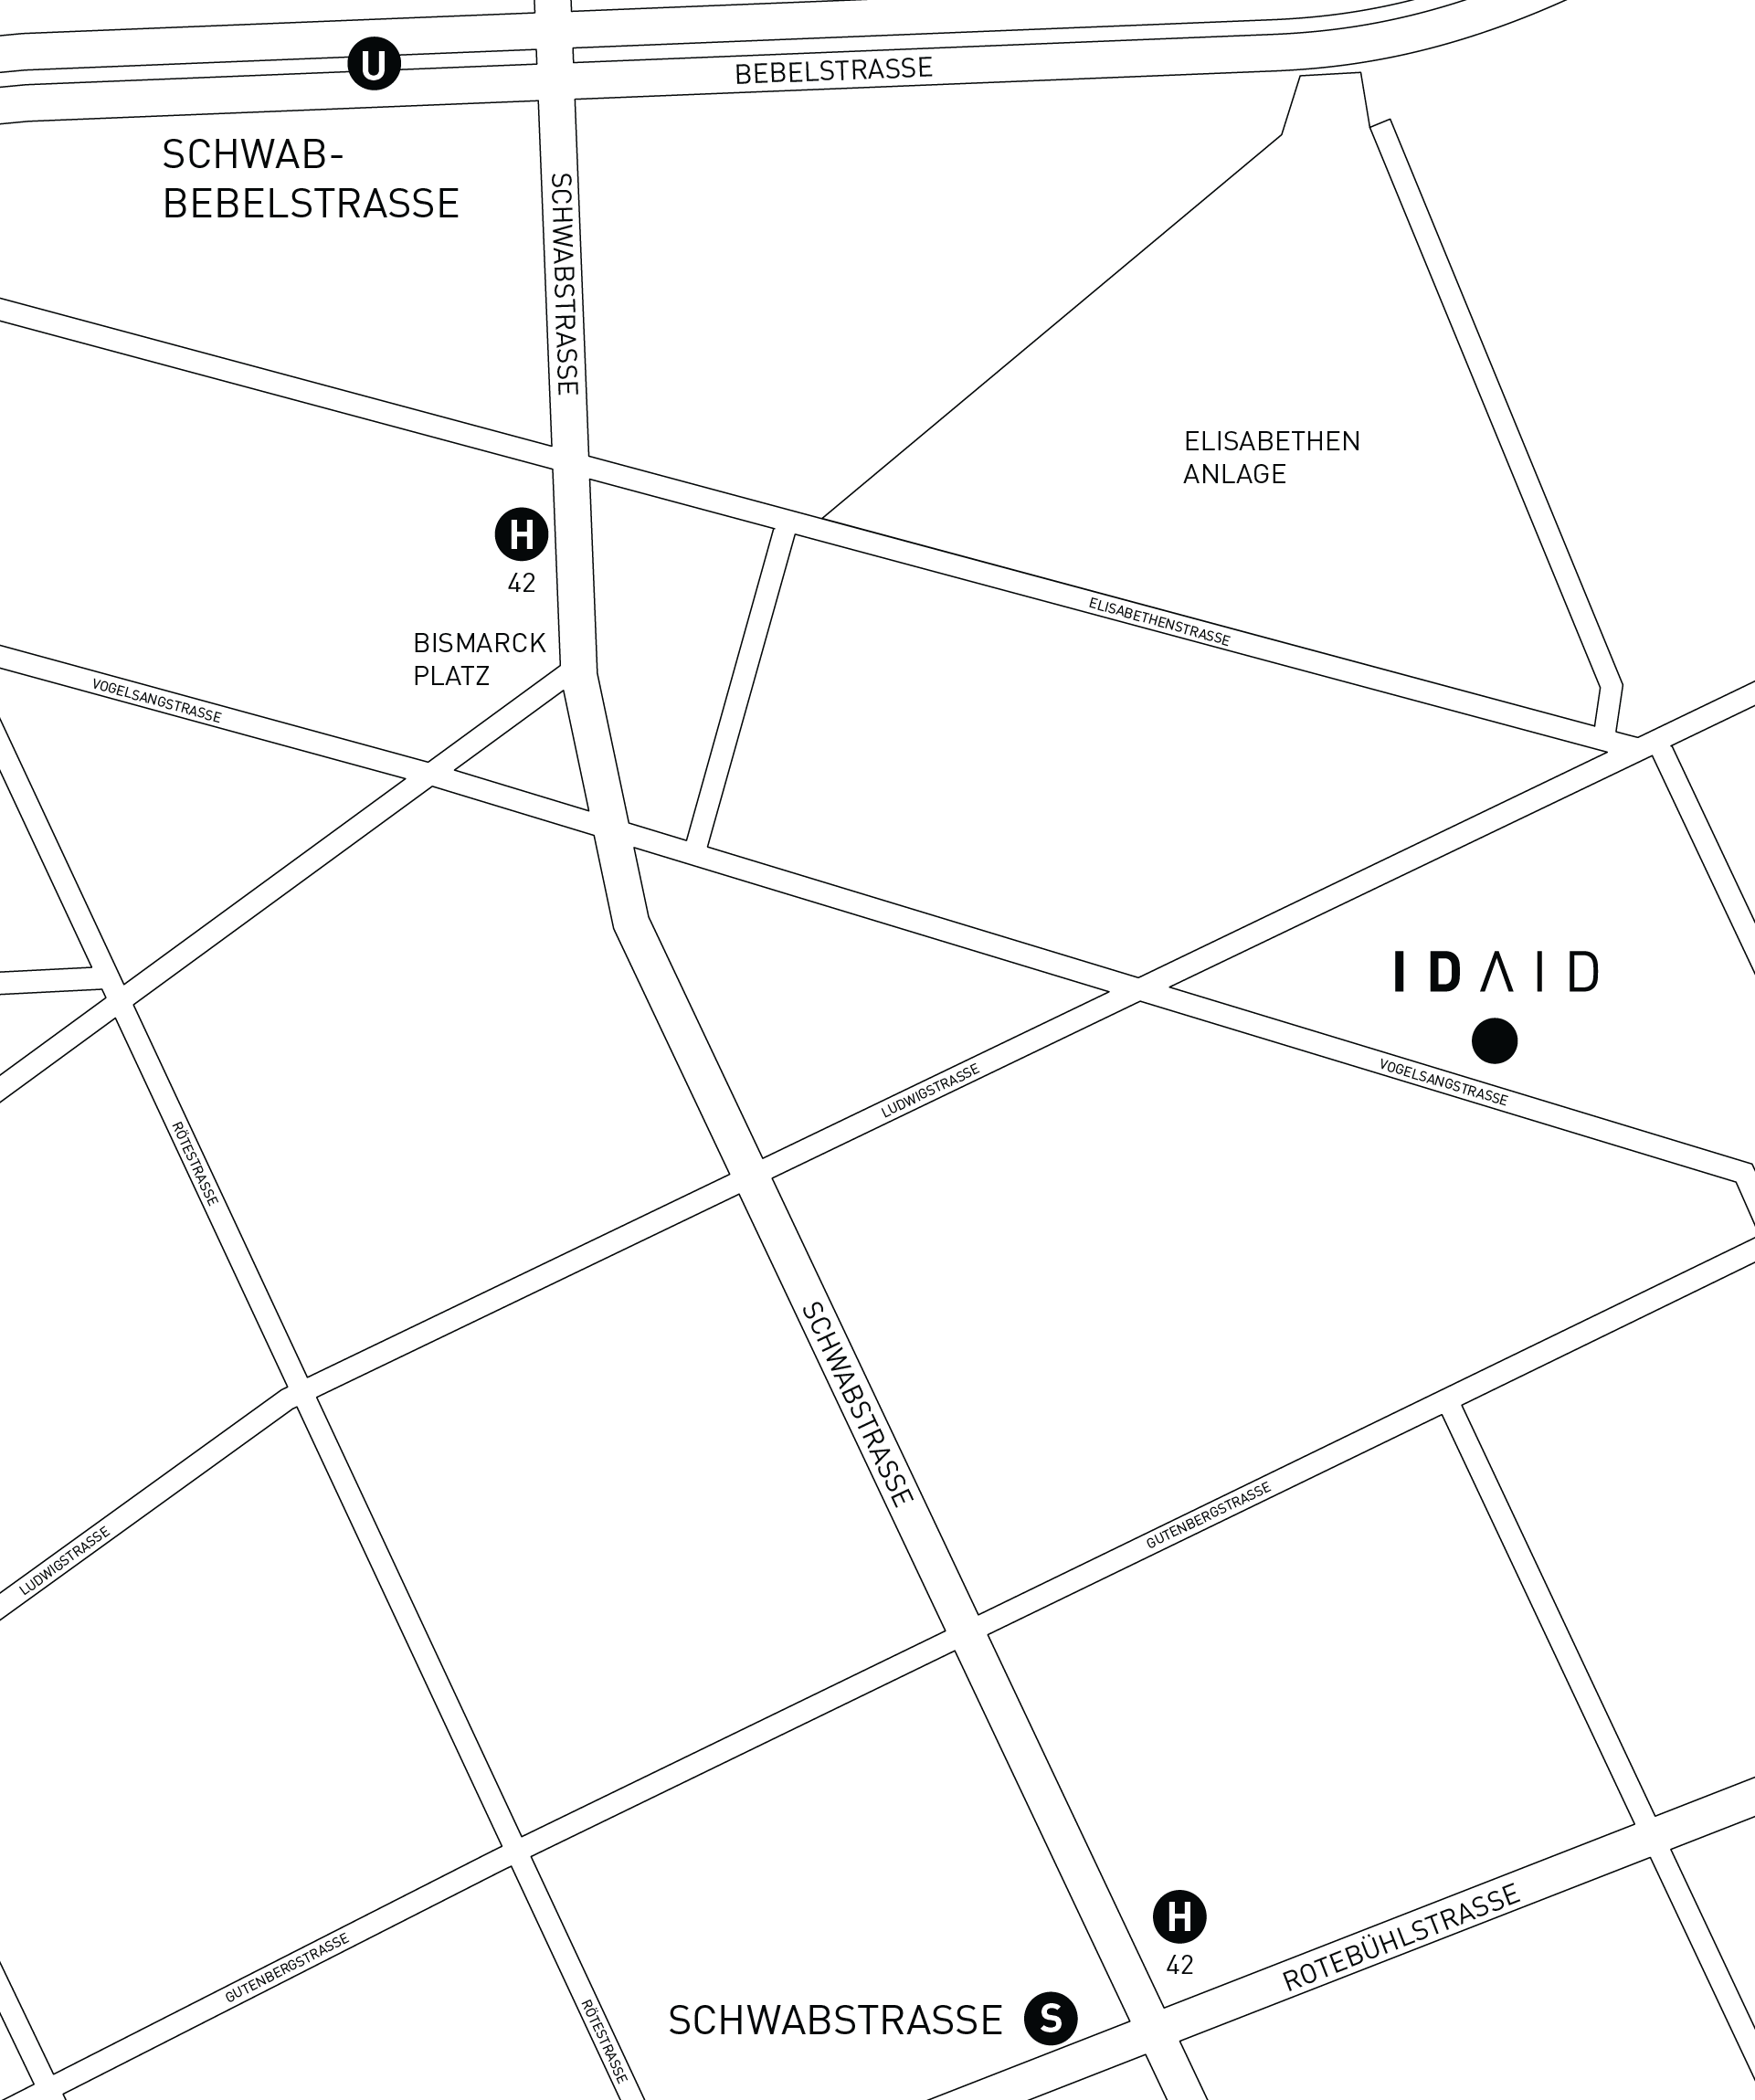 IDAID_MAP_VS03_XL_03-01